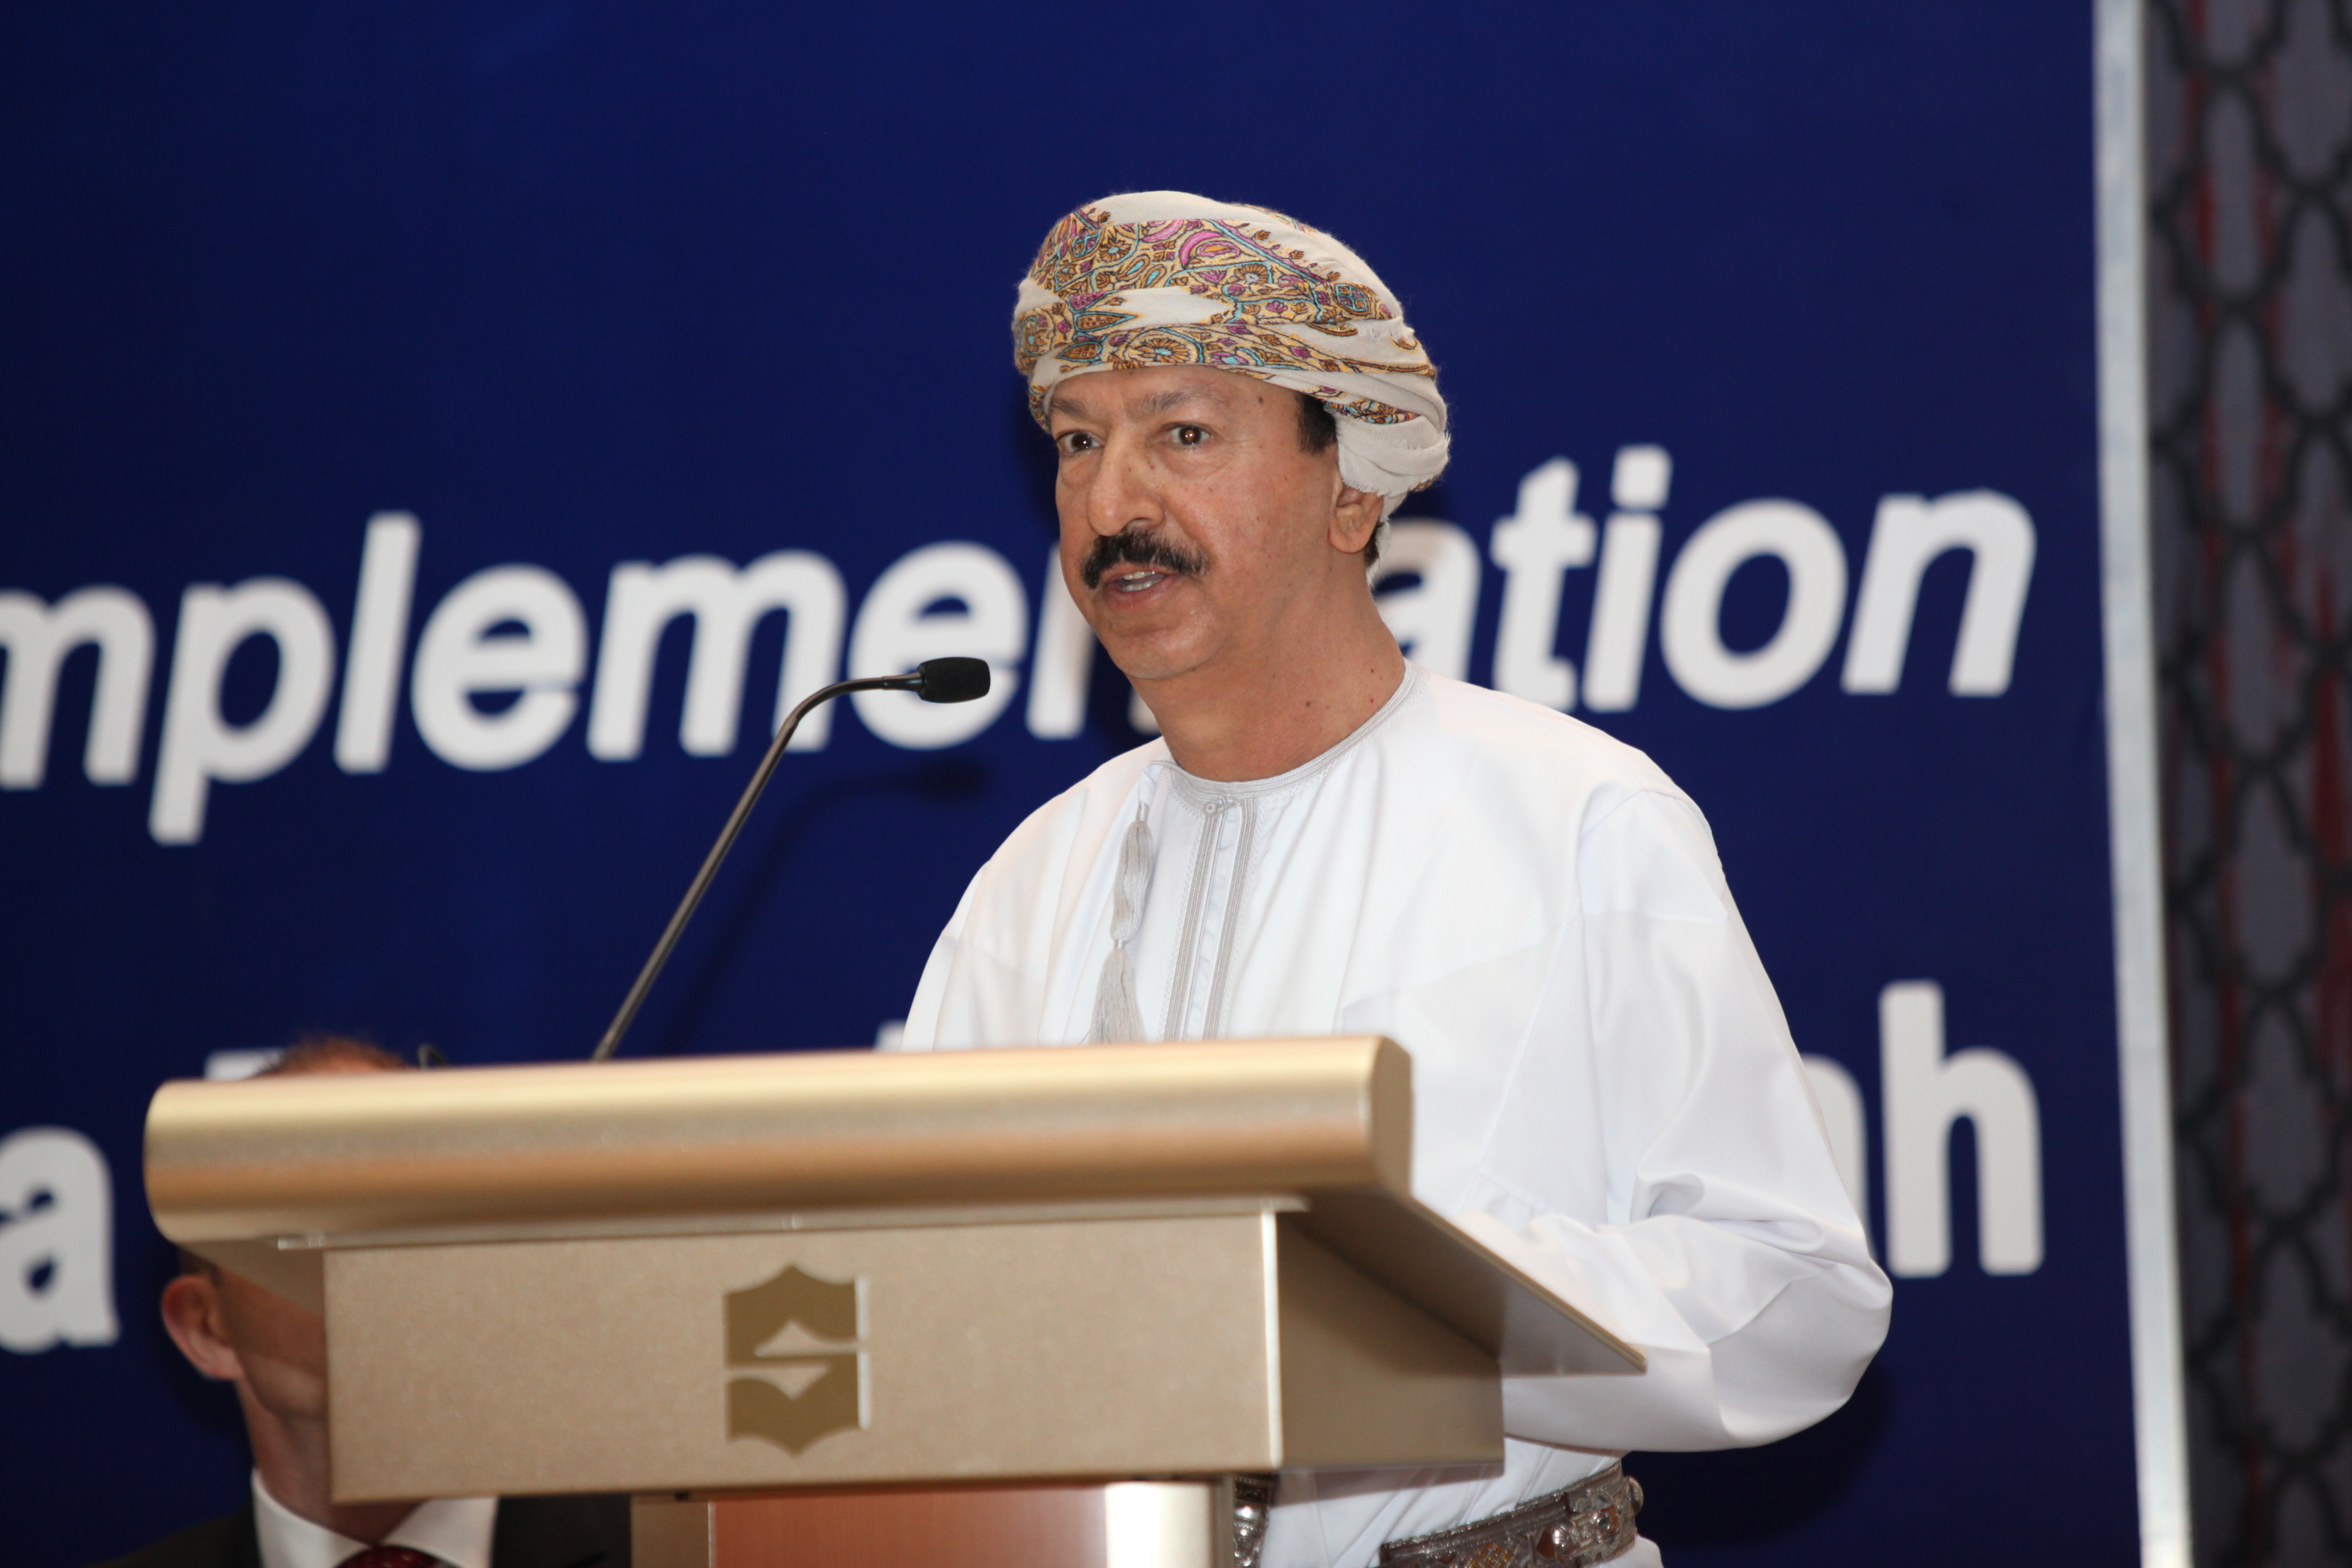 Bank credit in Oman to grow by 8-10 per cent: CBO chief